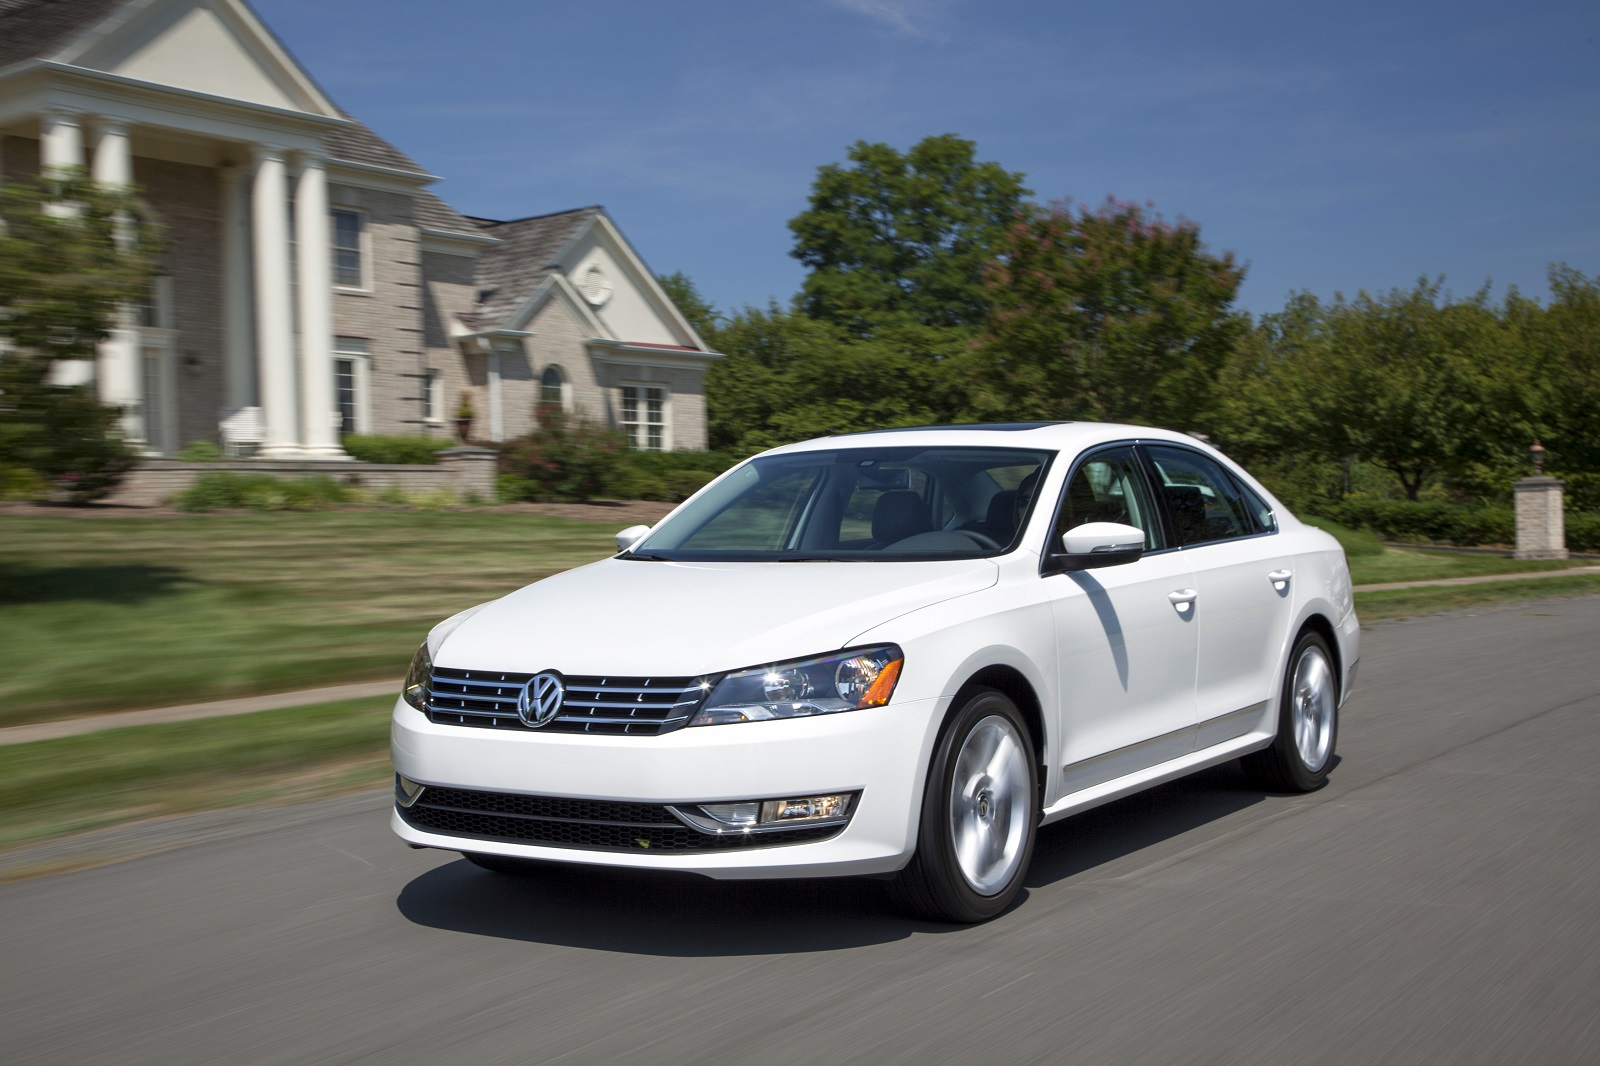 Not Just VW: Internet Offers Diesel 'Defeat Devices' For Sale Too